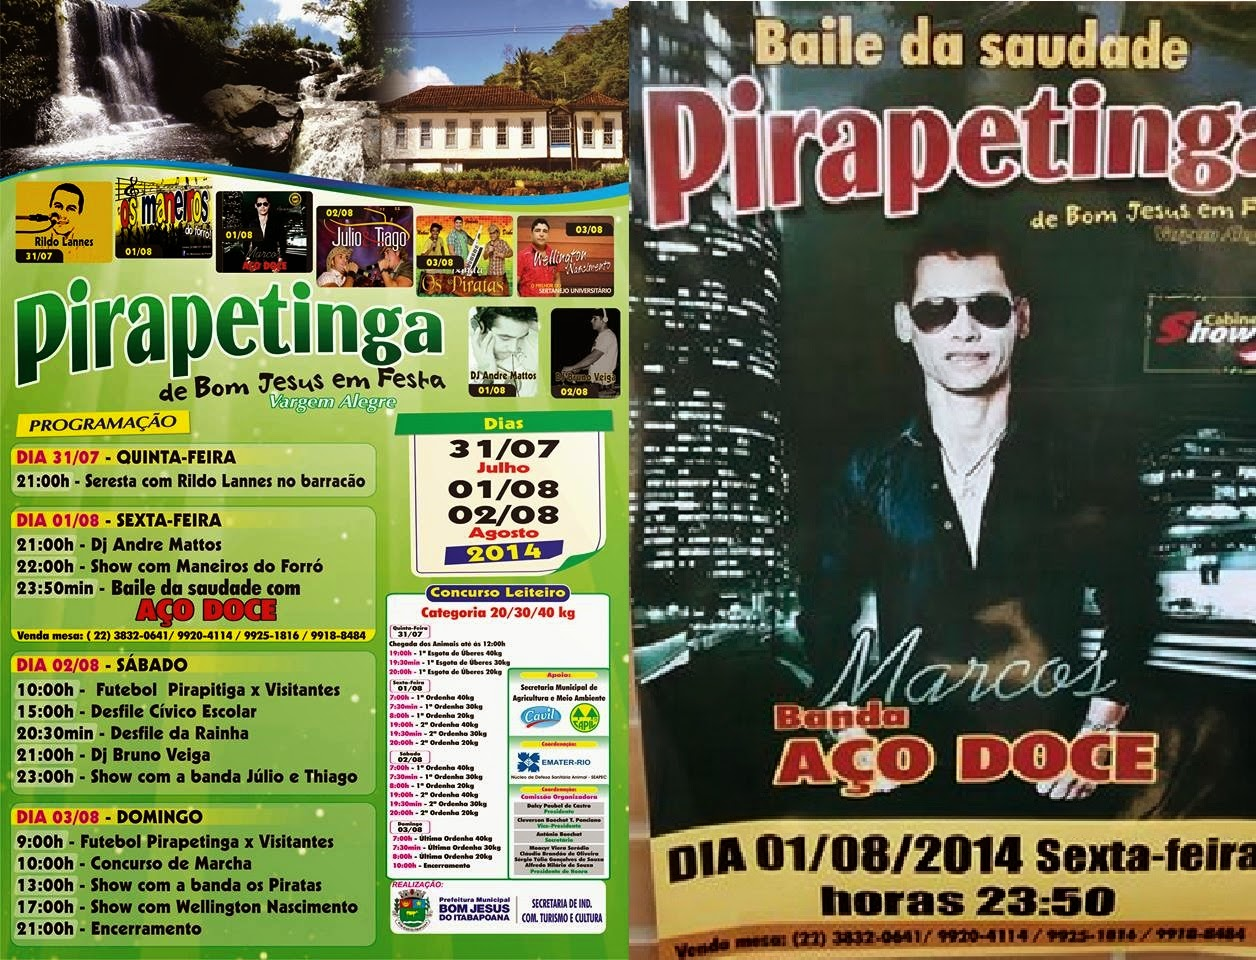 Cultura popular | Pirapetinga em festa!